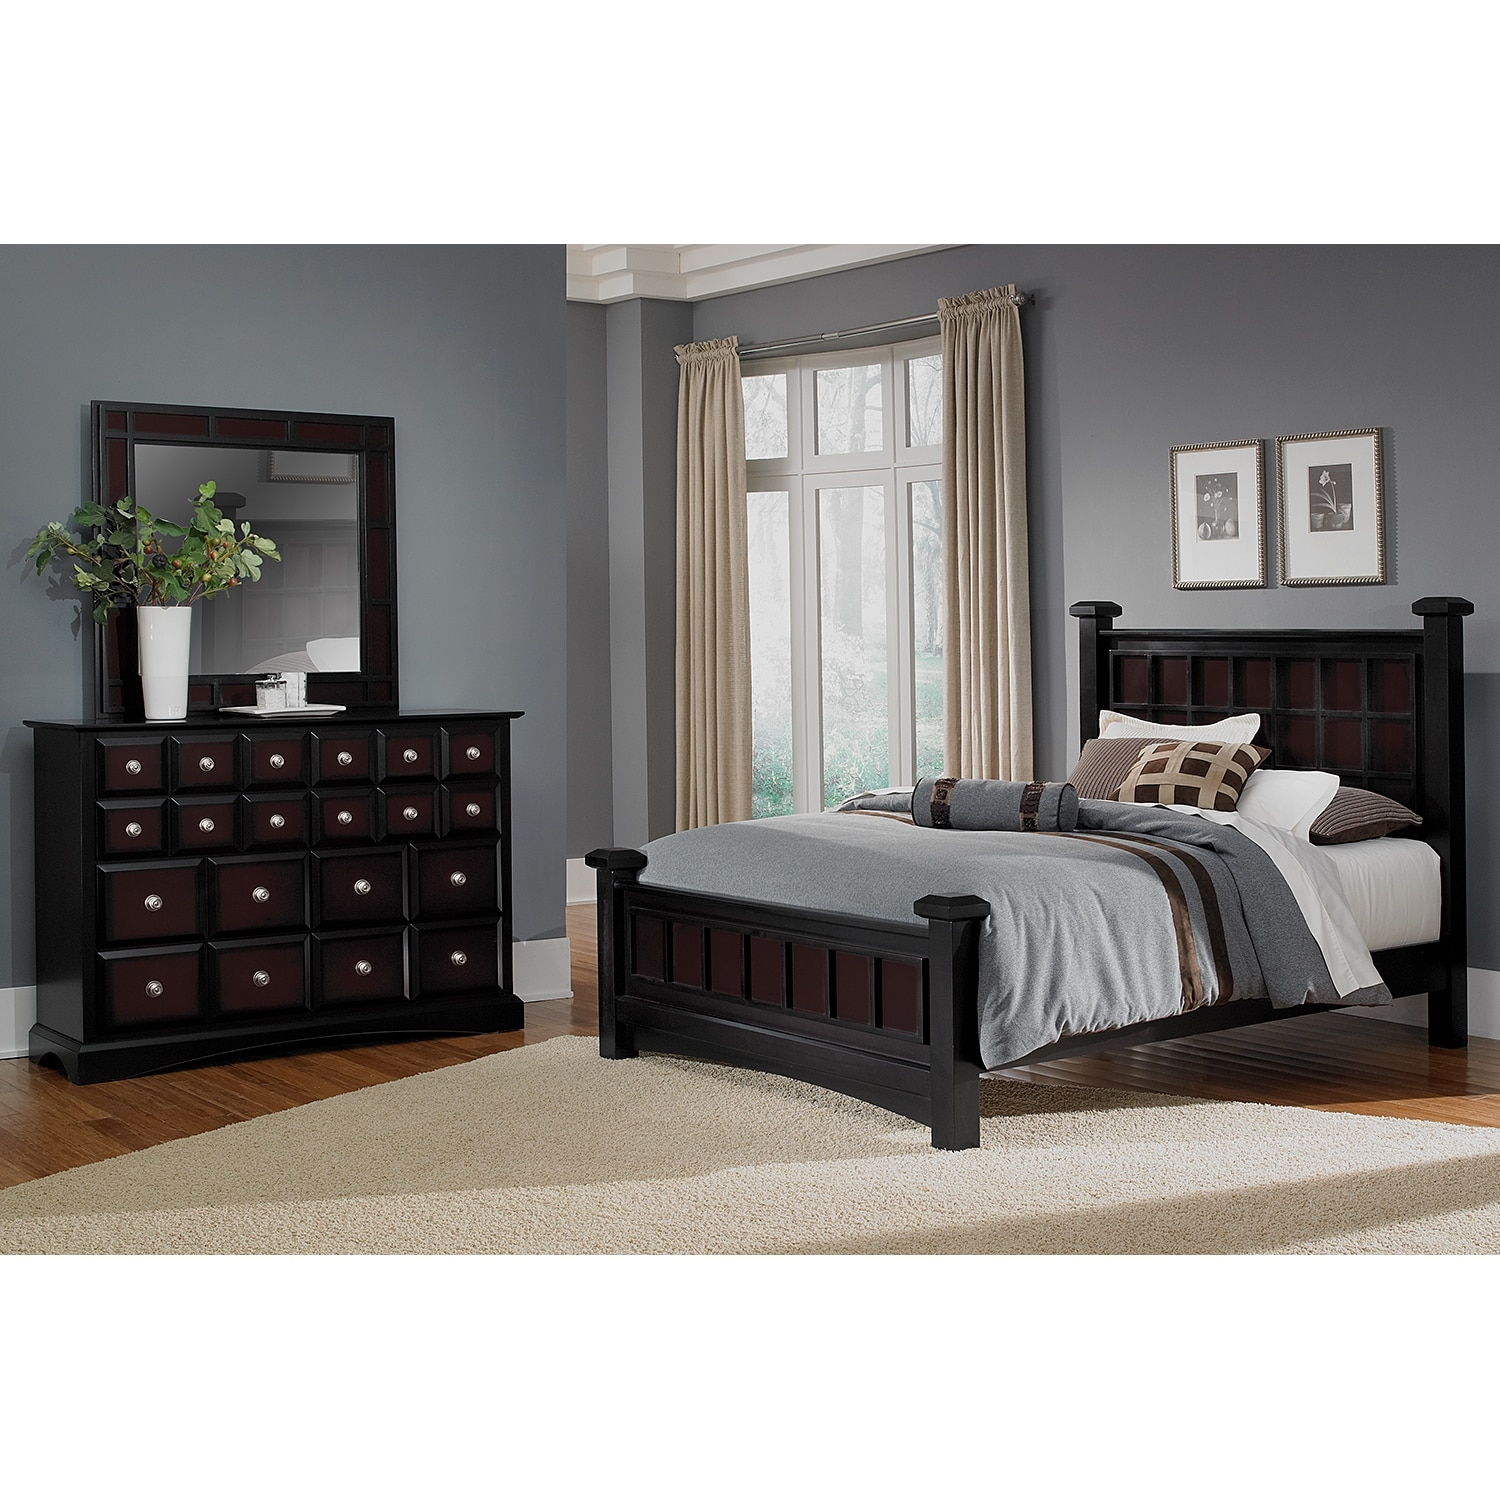 Winchester 5 piece queen bedroom set black and burnished - Black queen bedroom furniture set ...